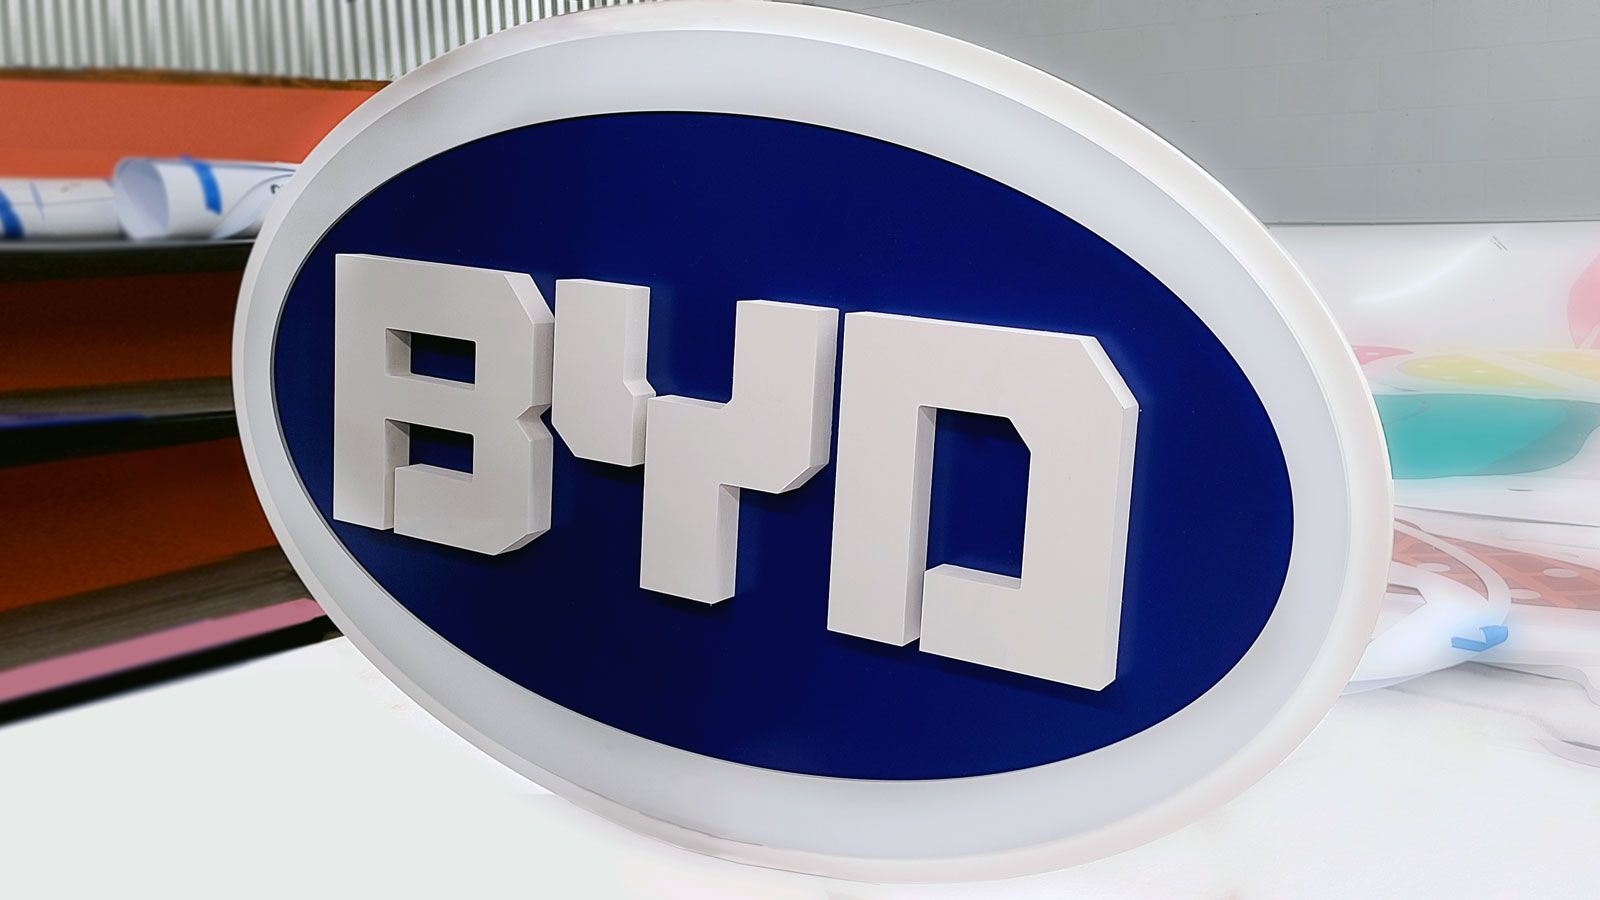 BYD 3d sign